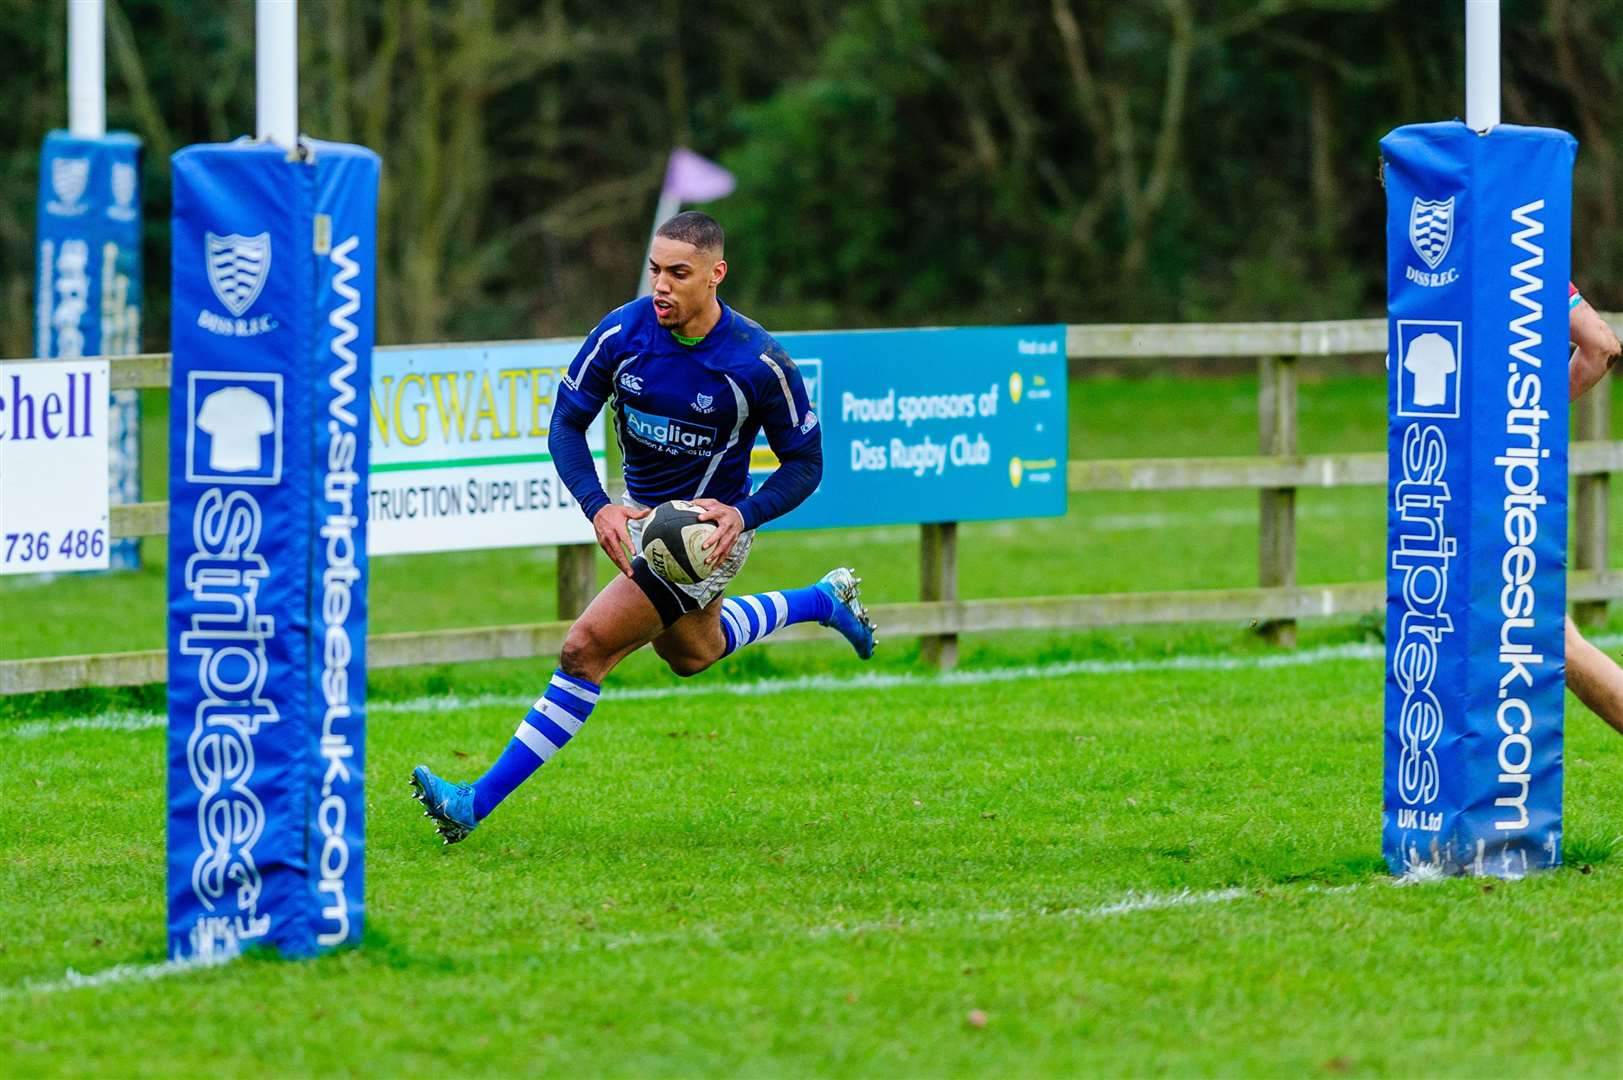 11/01/2020. Roydon, UK. ..Rugby action from Diss v Epping Upper Clapton. Shaun Blyth..Photo by Mark Bullimore. (34347805)